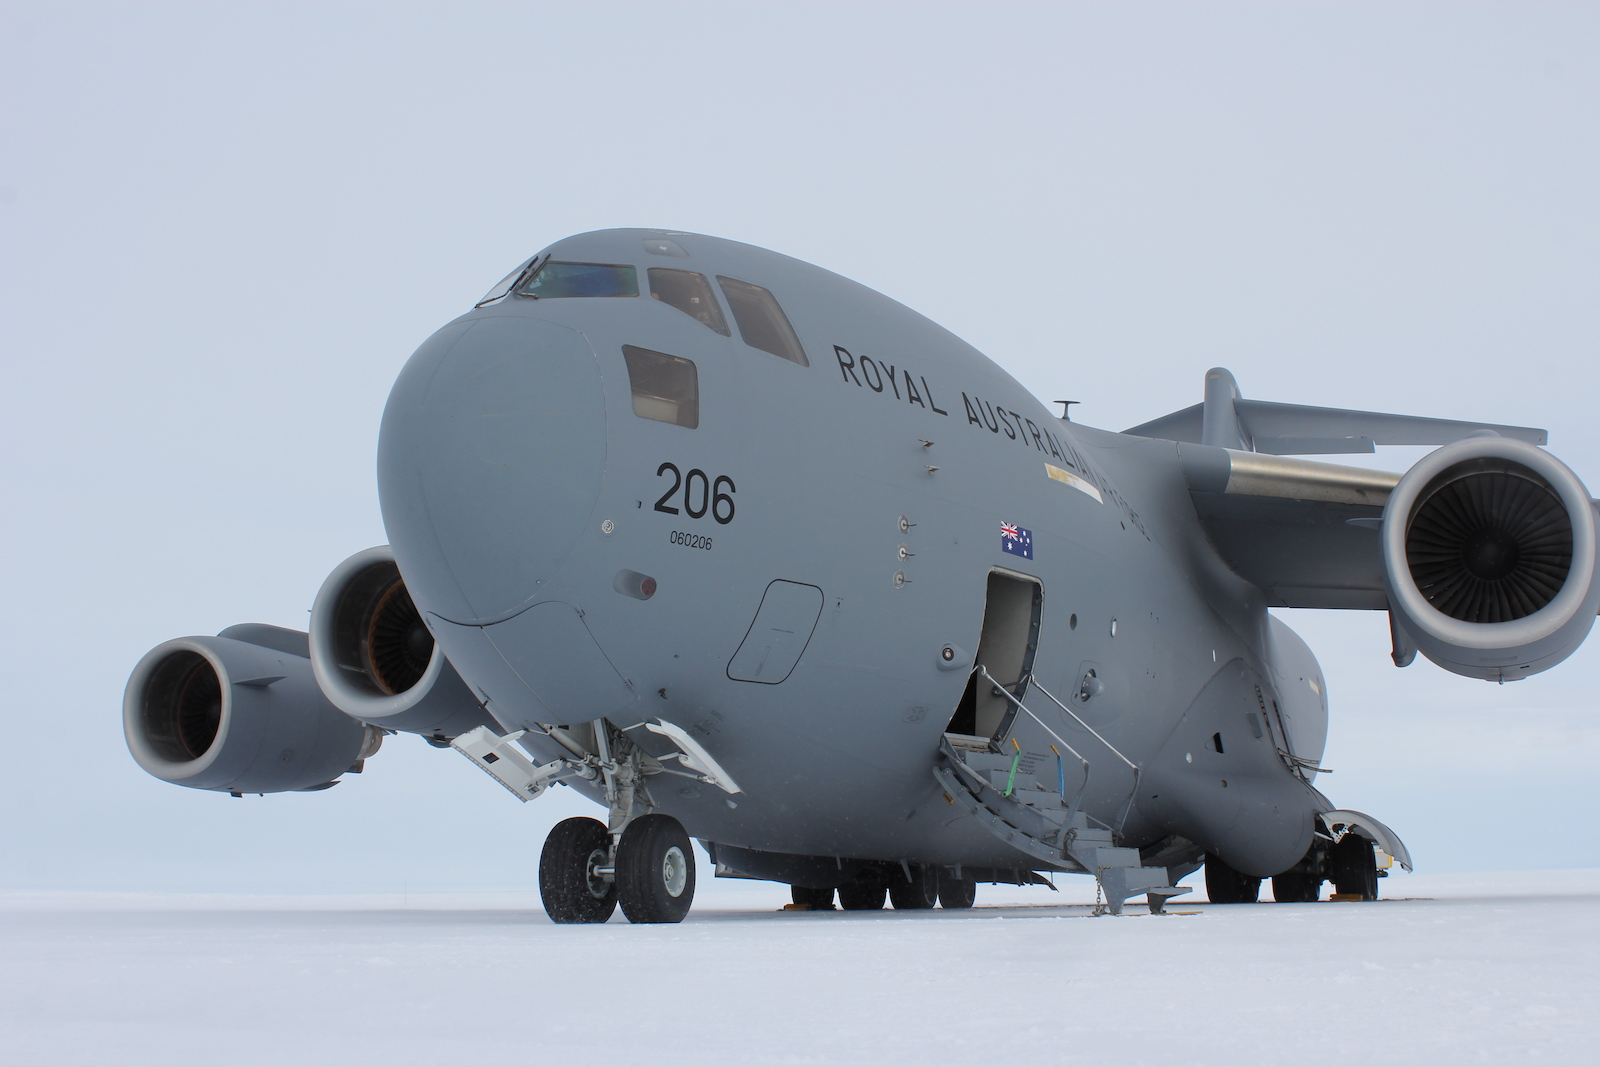 RAAF C-17A Globemaster III at Wilkins Aerodrome in Antarctica for Operation Southern Discovery 20/21 (Defence Department)